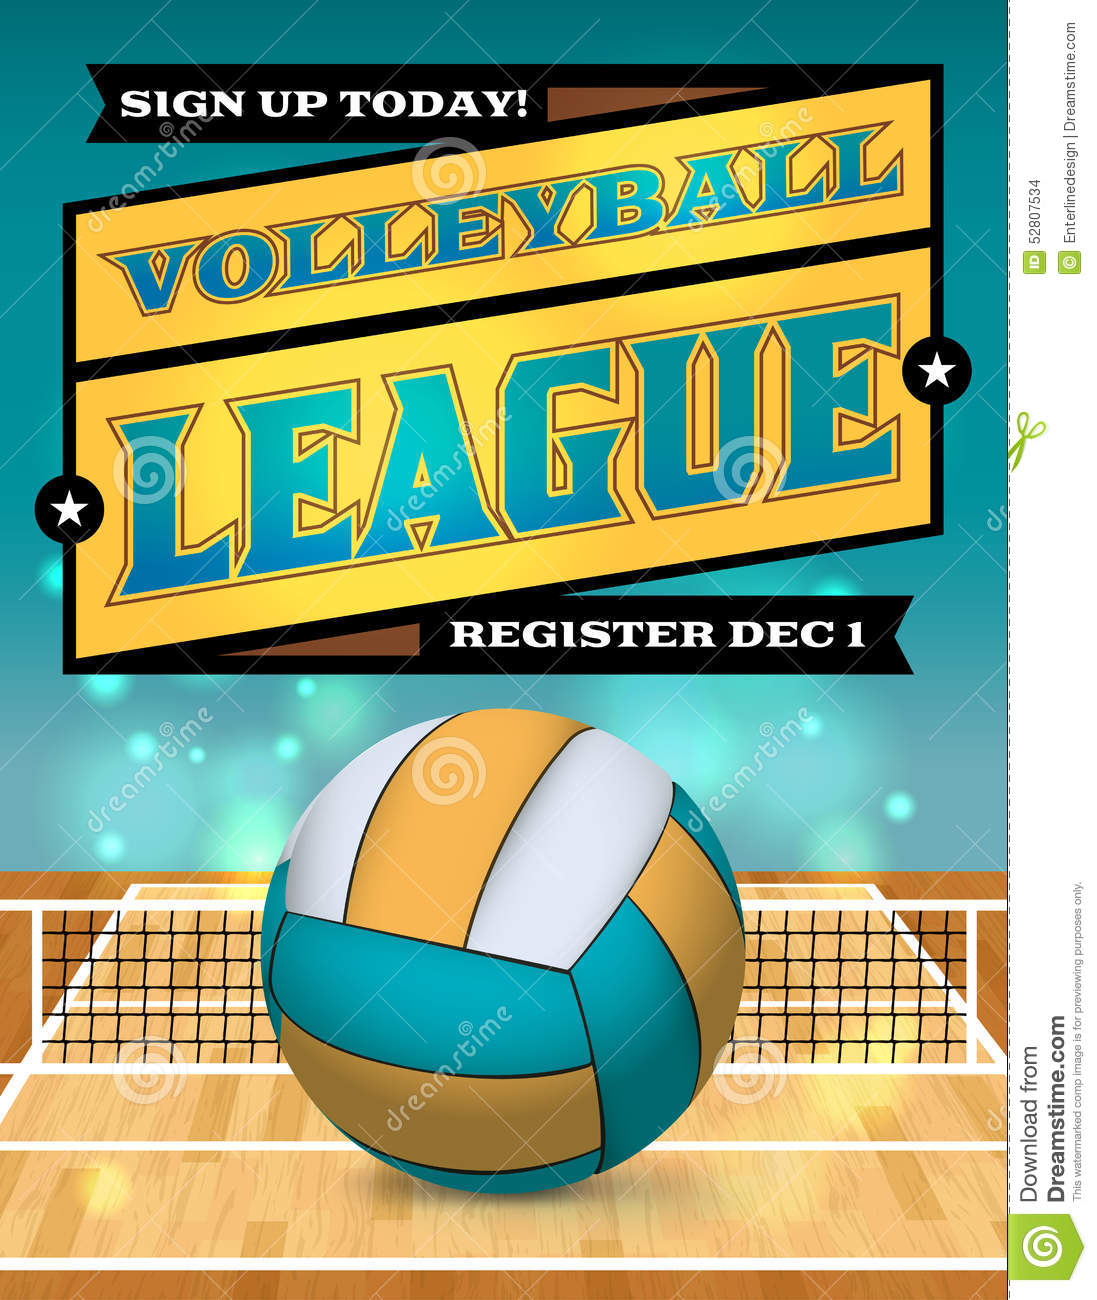 Volleyball League Flyer Illustration Stock Vector Image